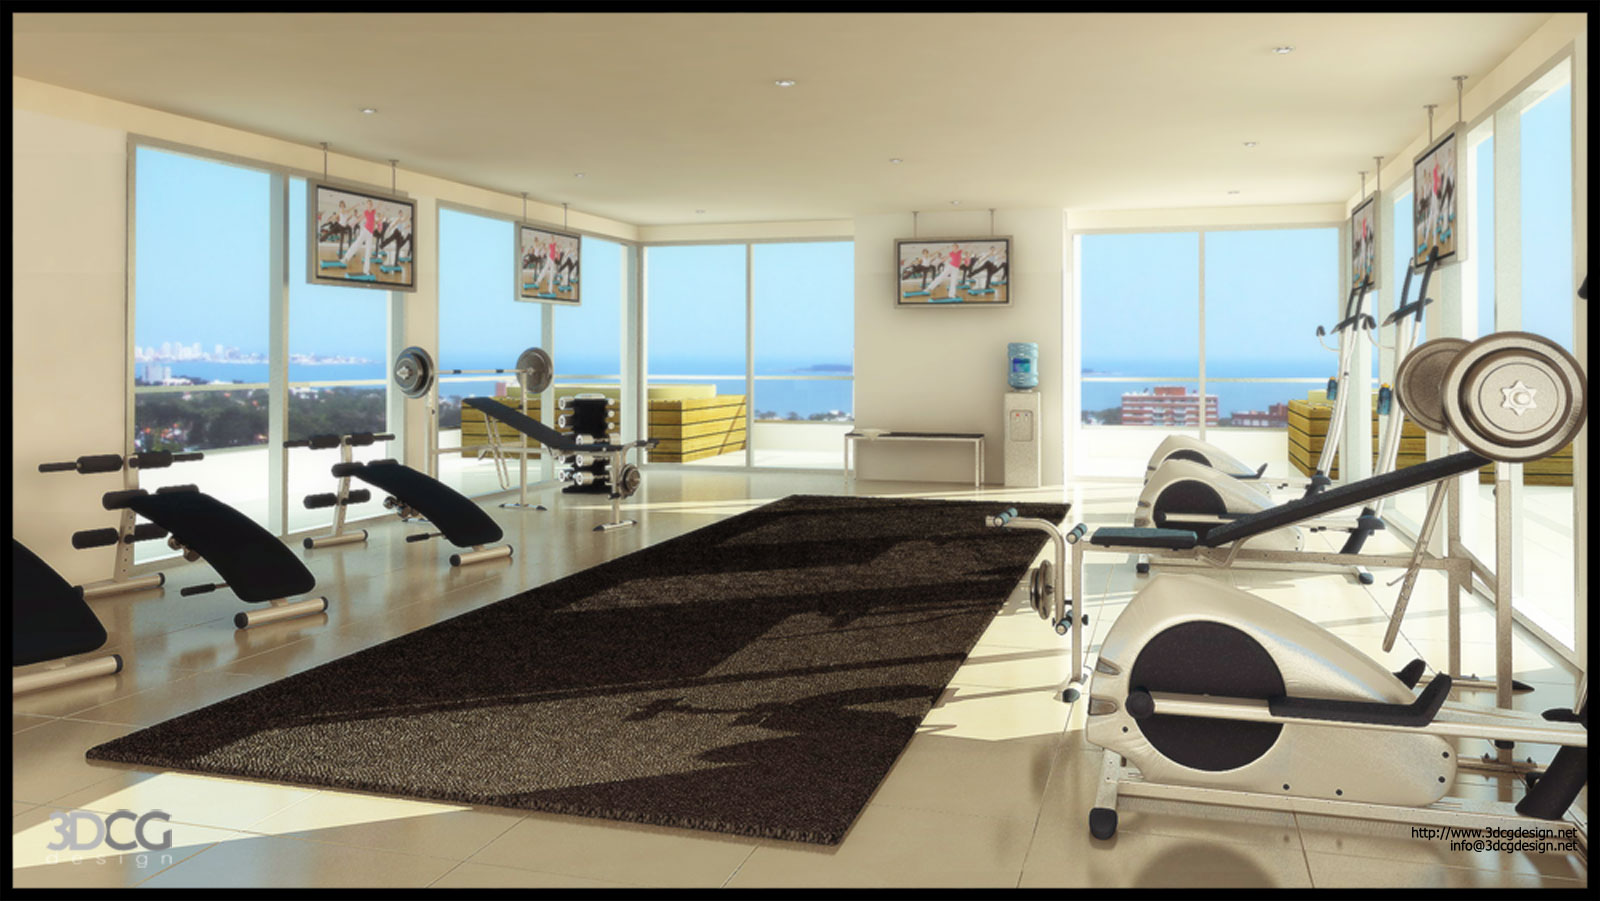 home gym design tips pictures cool house designs ventilated fresh plans freshnist